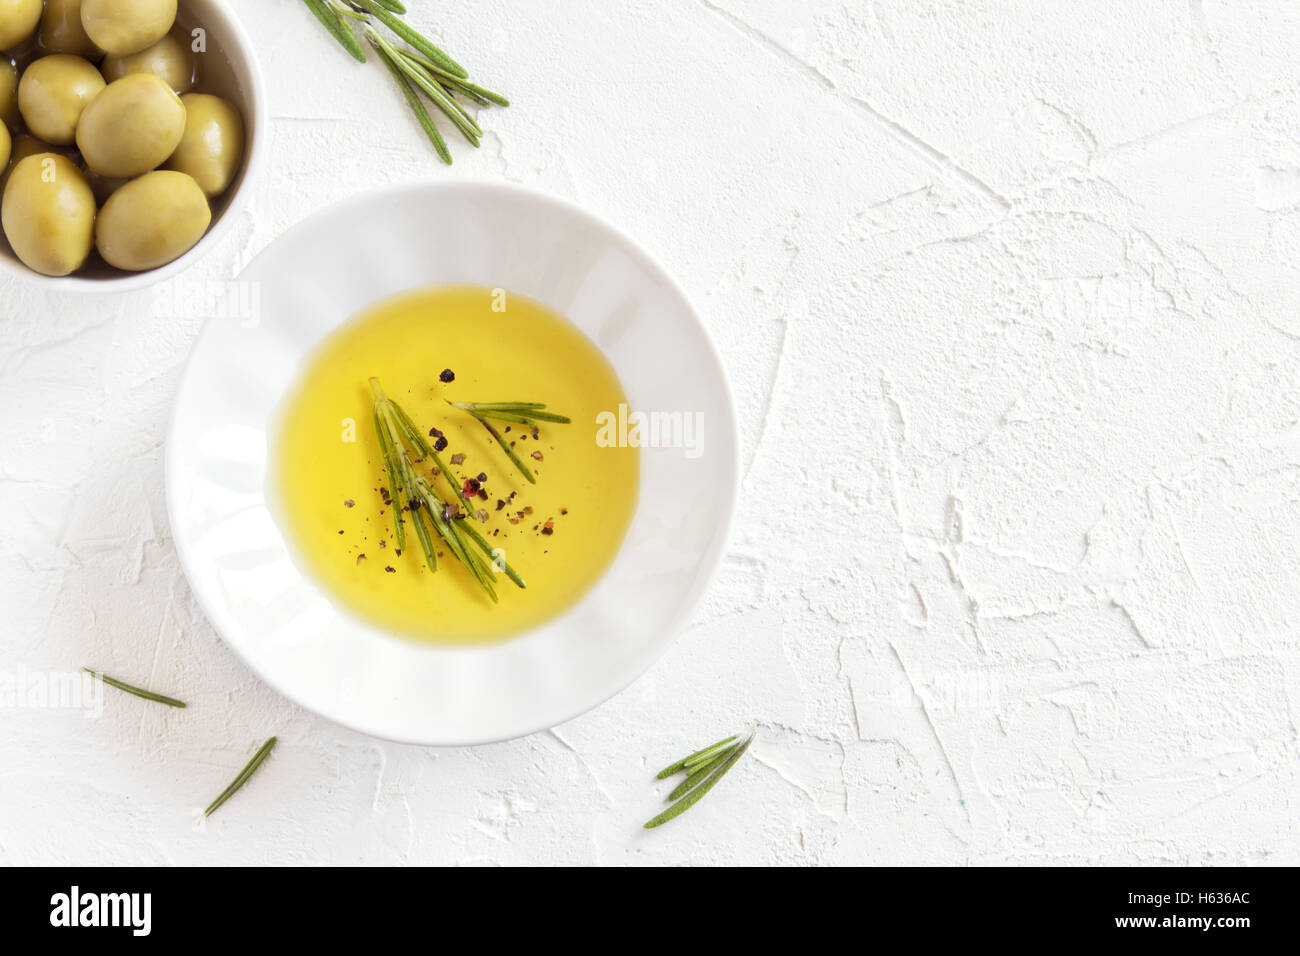 Organic olive oil with rosemary and spices (peppers) over white stone background with copy space, healthy food concept - Stock Image